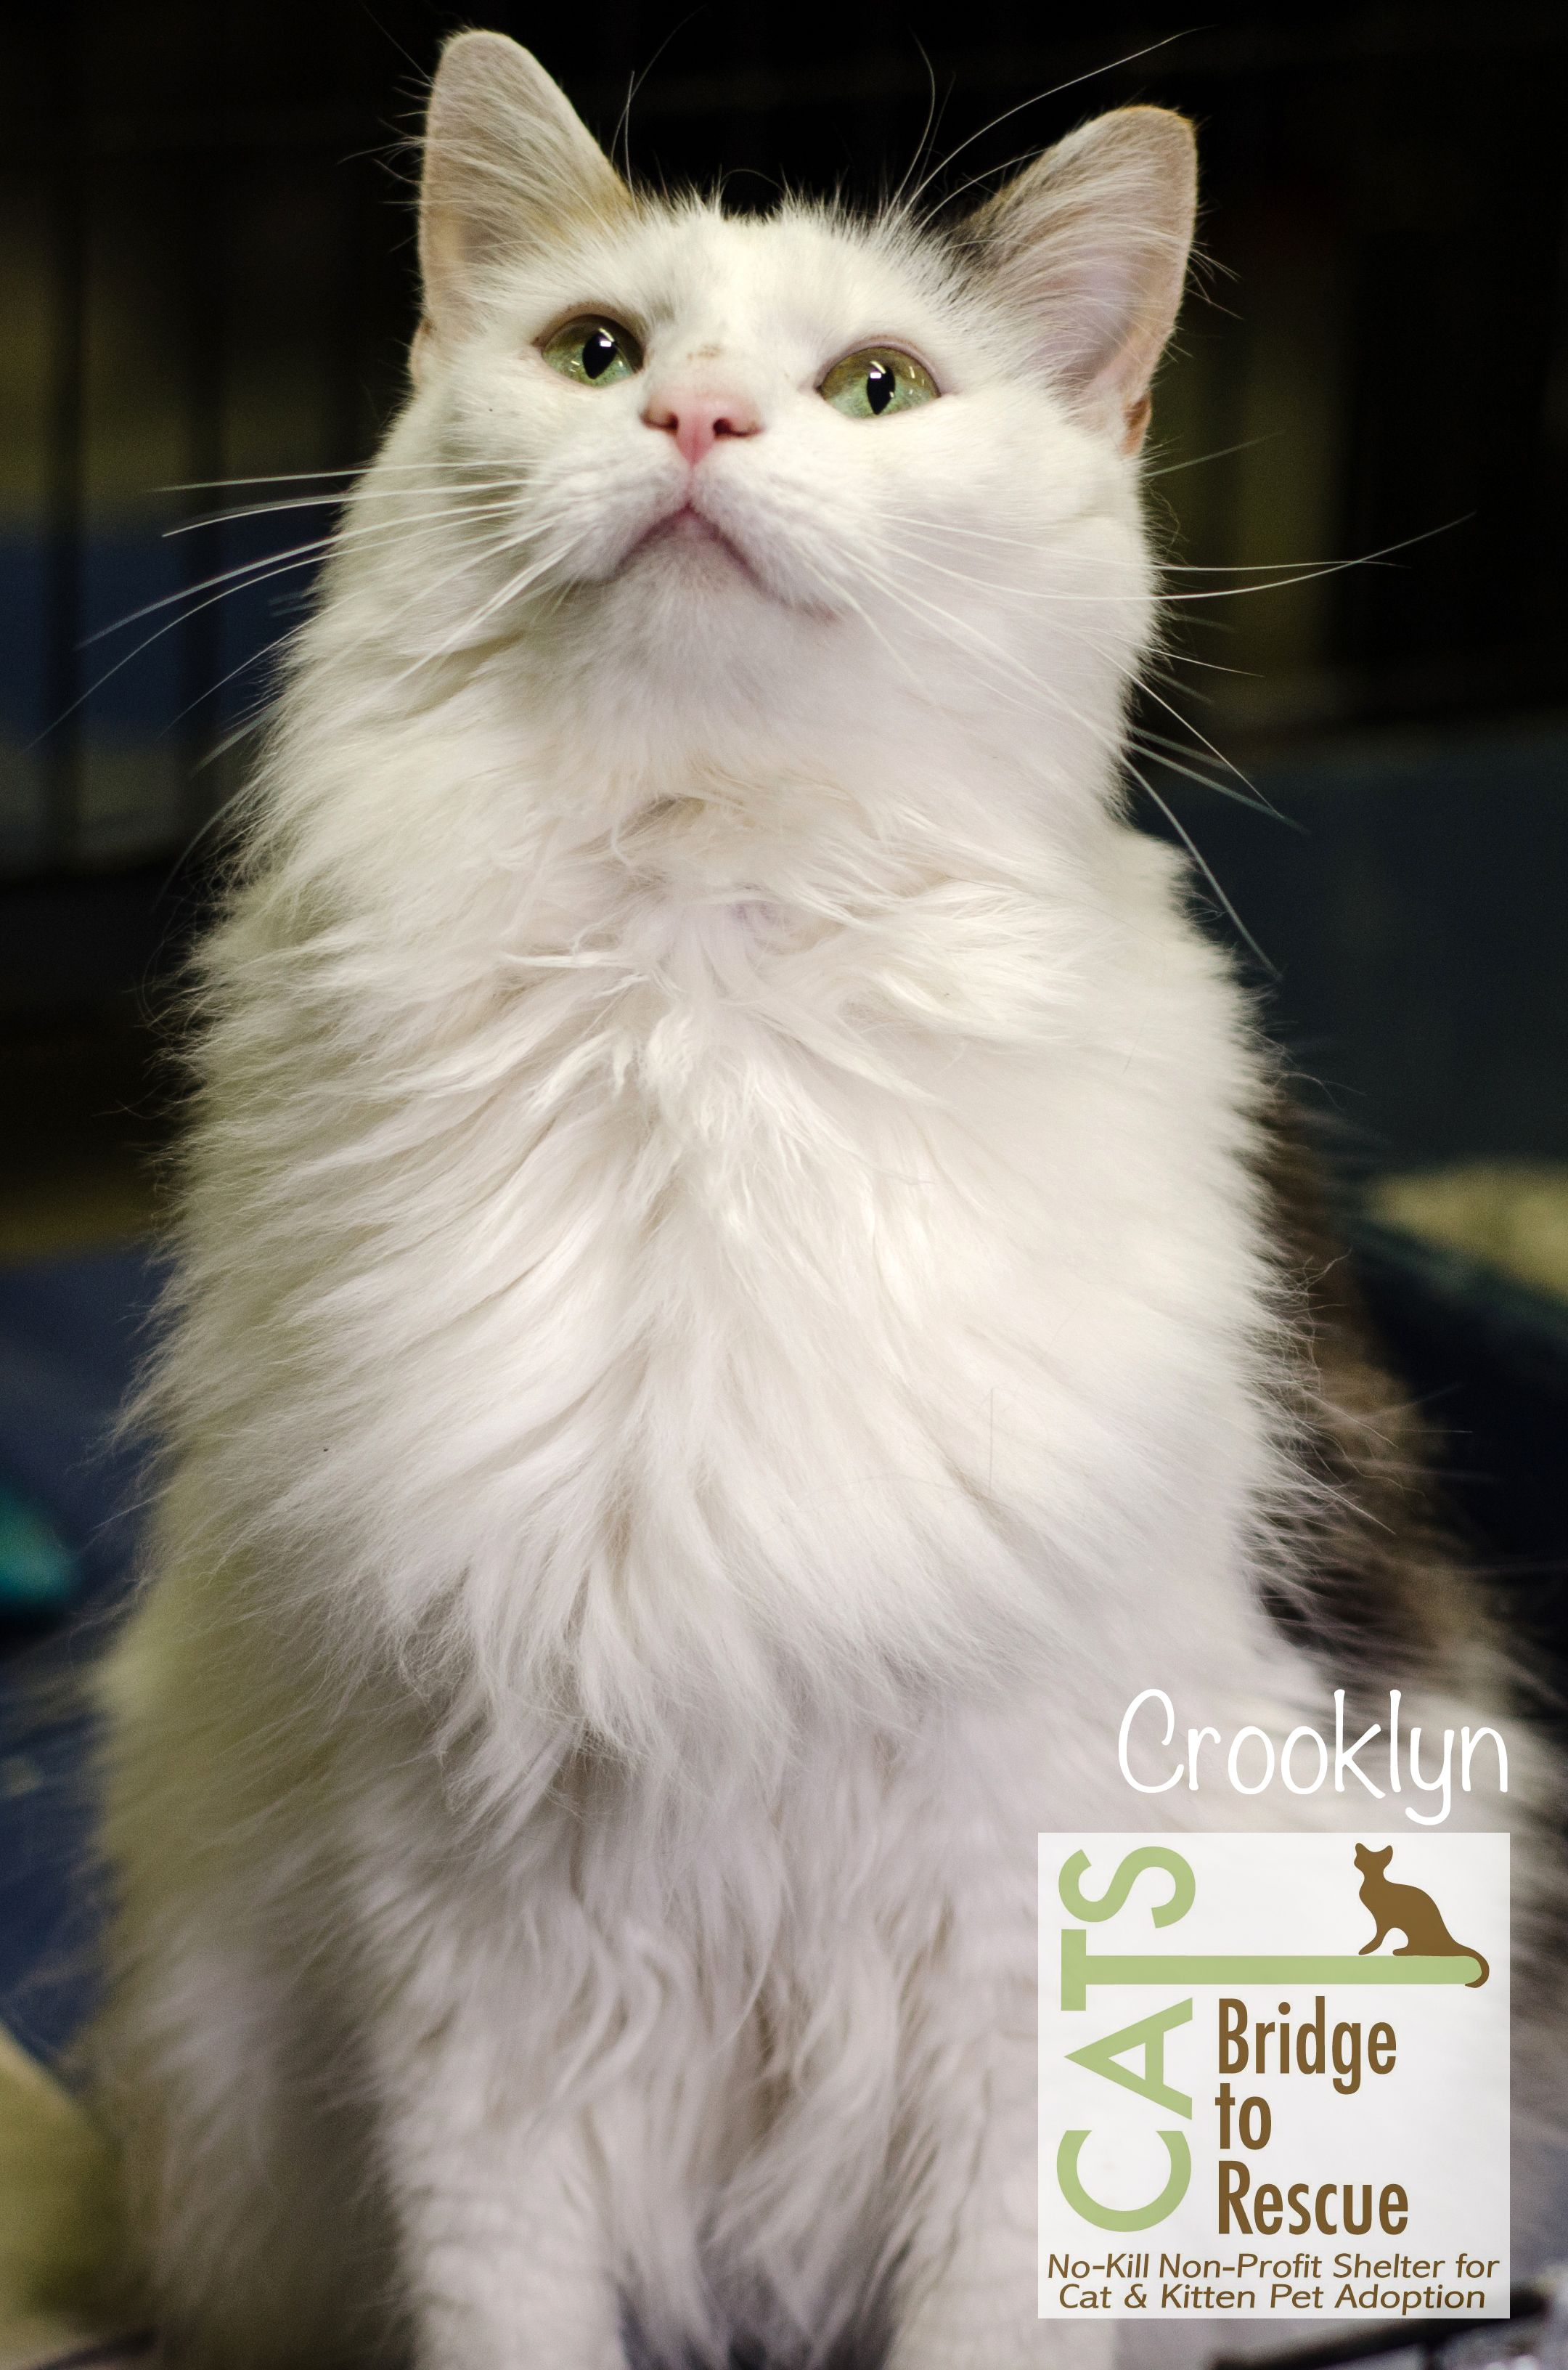 Crooklyn Adopted 2015 Animal Shelter Cat Day Cats